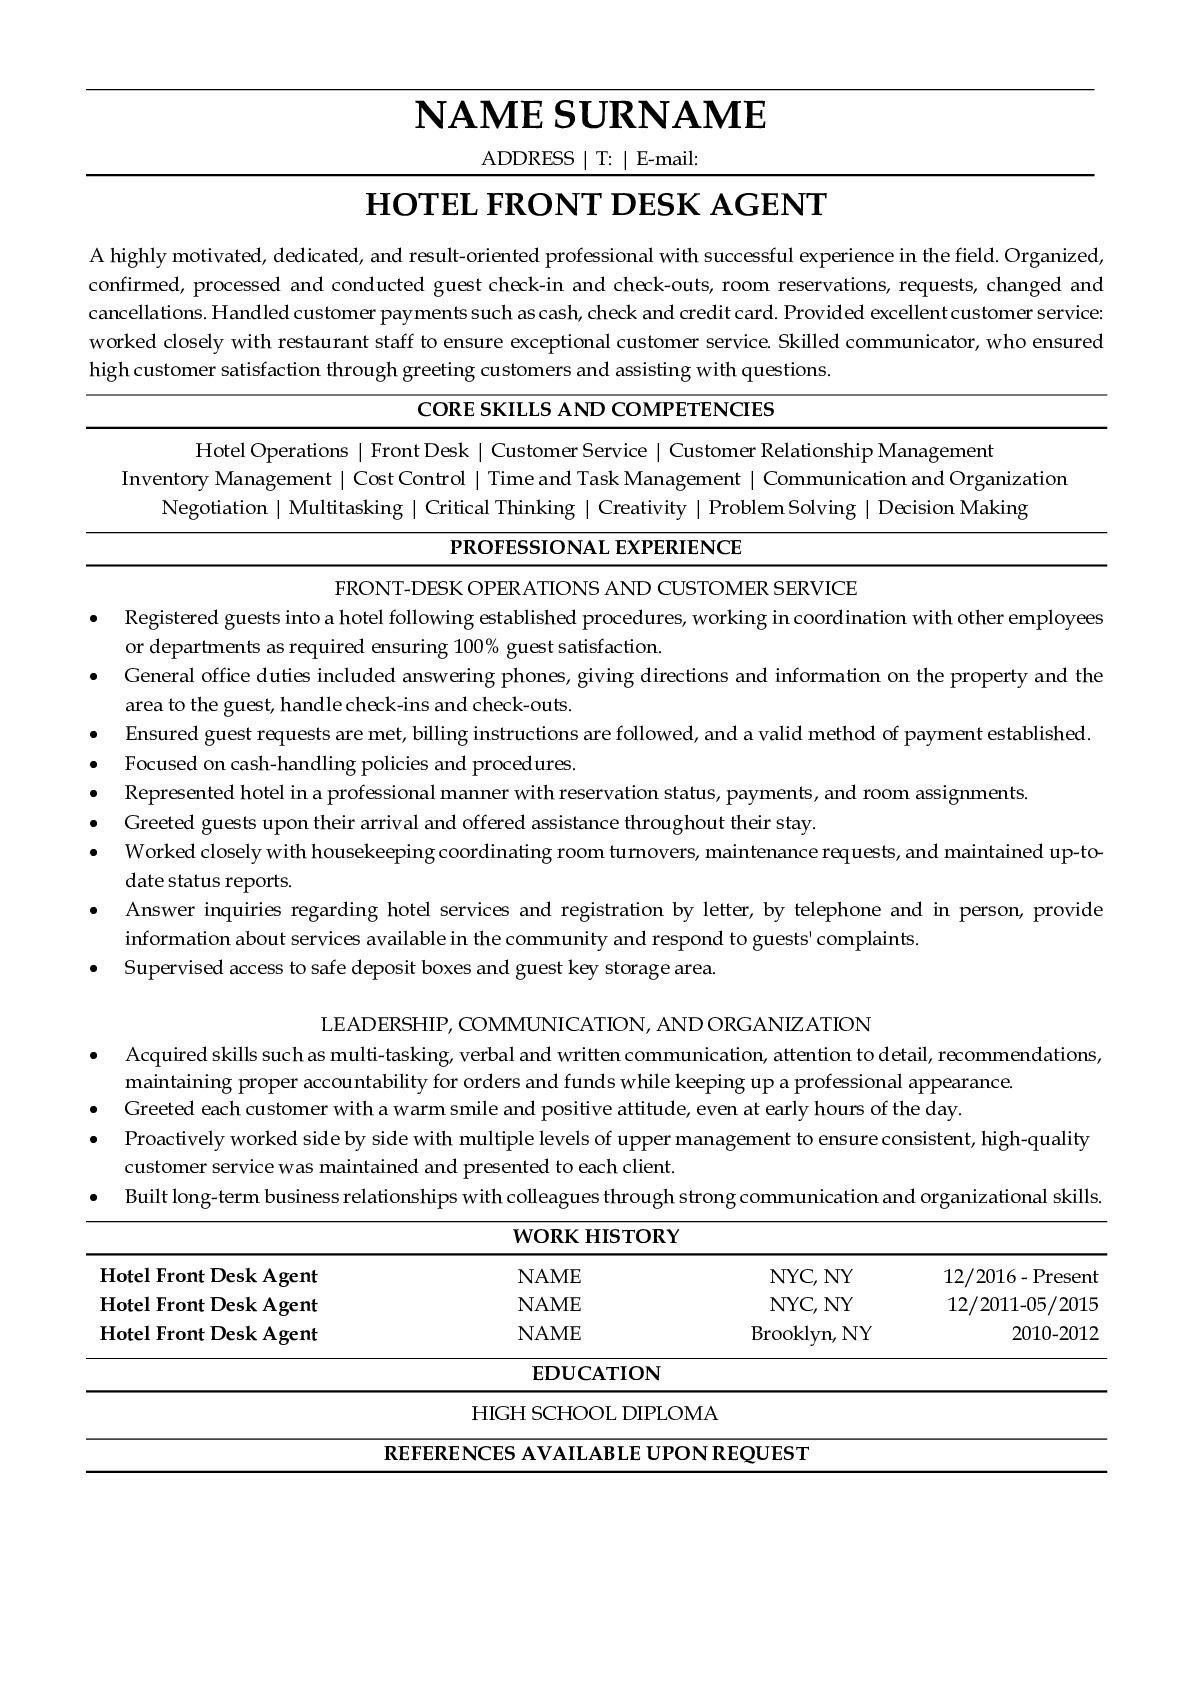 Resume Example for Hotel Front Desk Employee